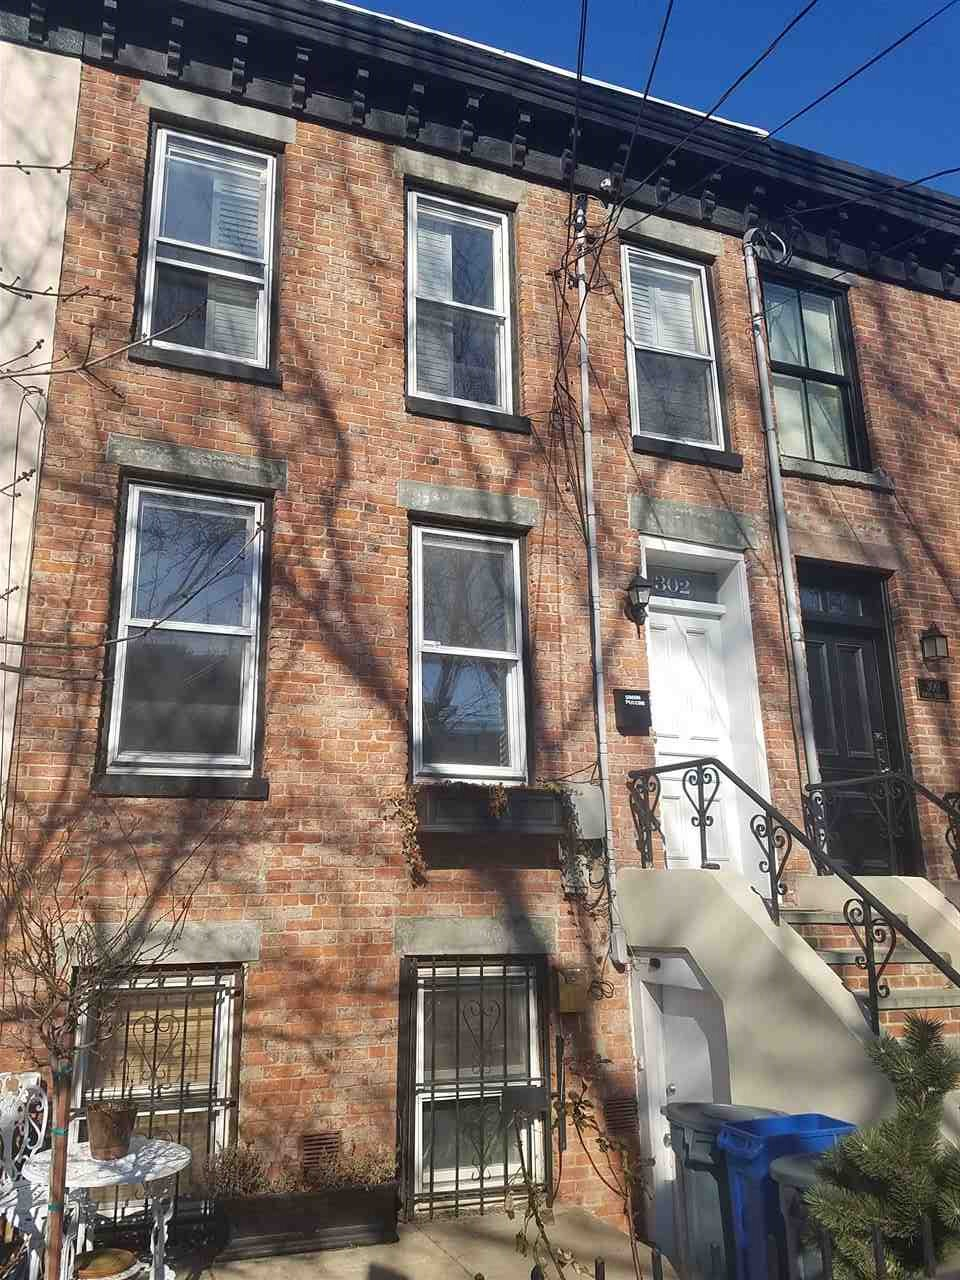 302 5TH ST 1, JC, Downtown, NJ 07302